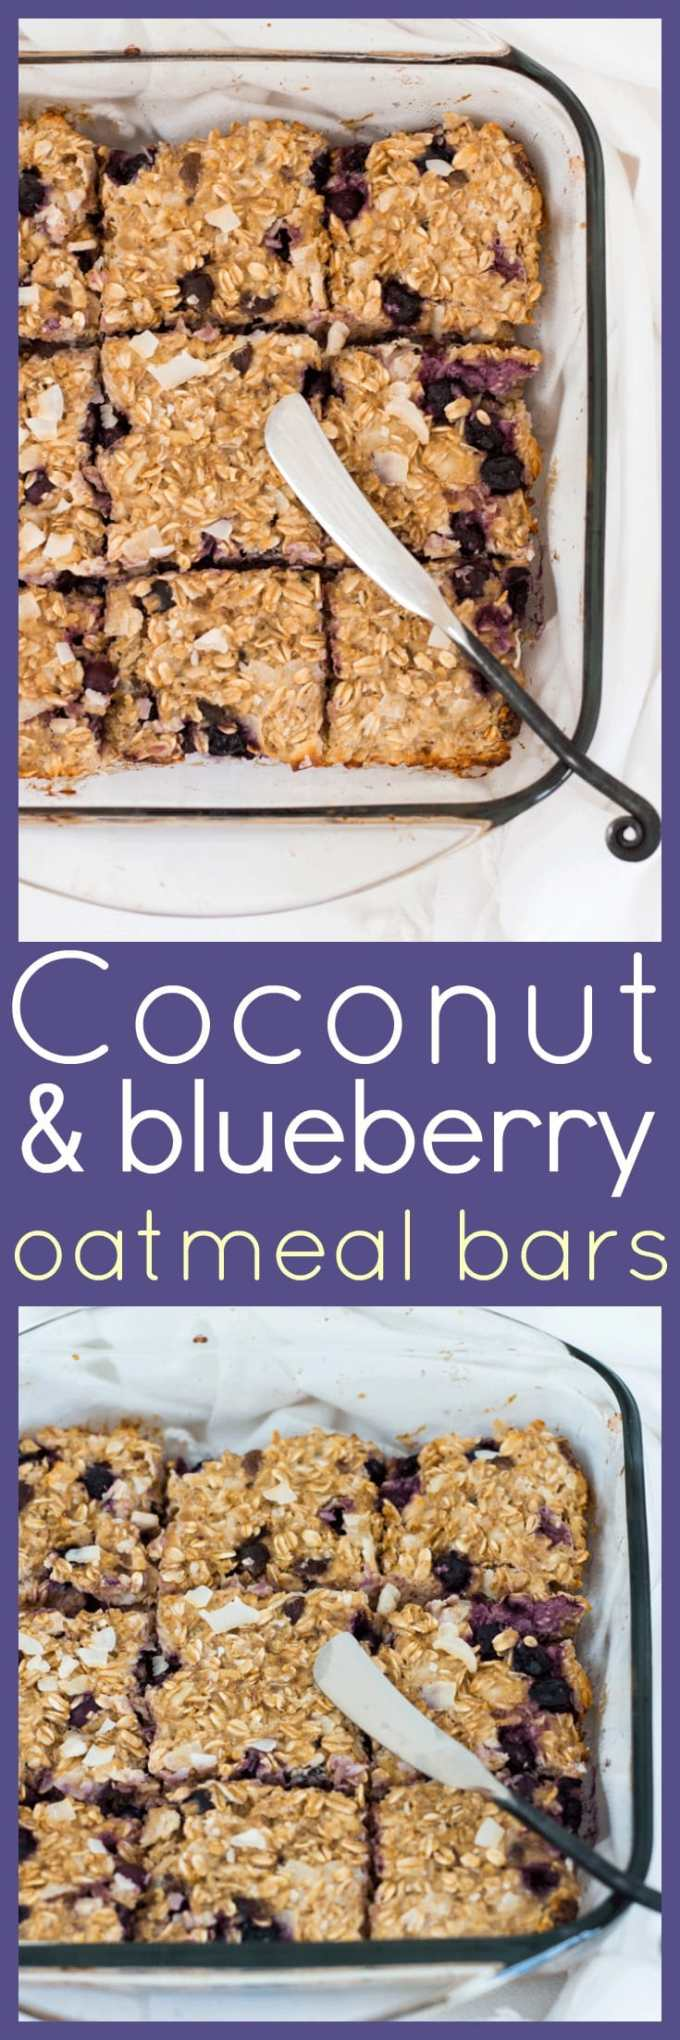 Healthy, filling and delicious, these Coconut and Blueberry Oatmeal Bars tick all the boxes for a great grab-n-go breakfast, a lunch box snack or an afternoon pick me up.